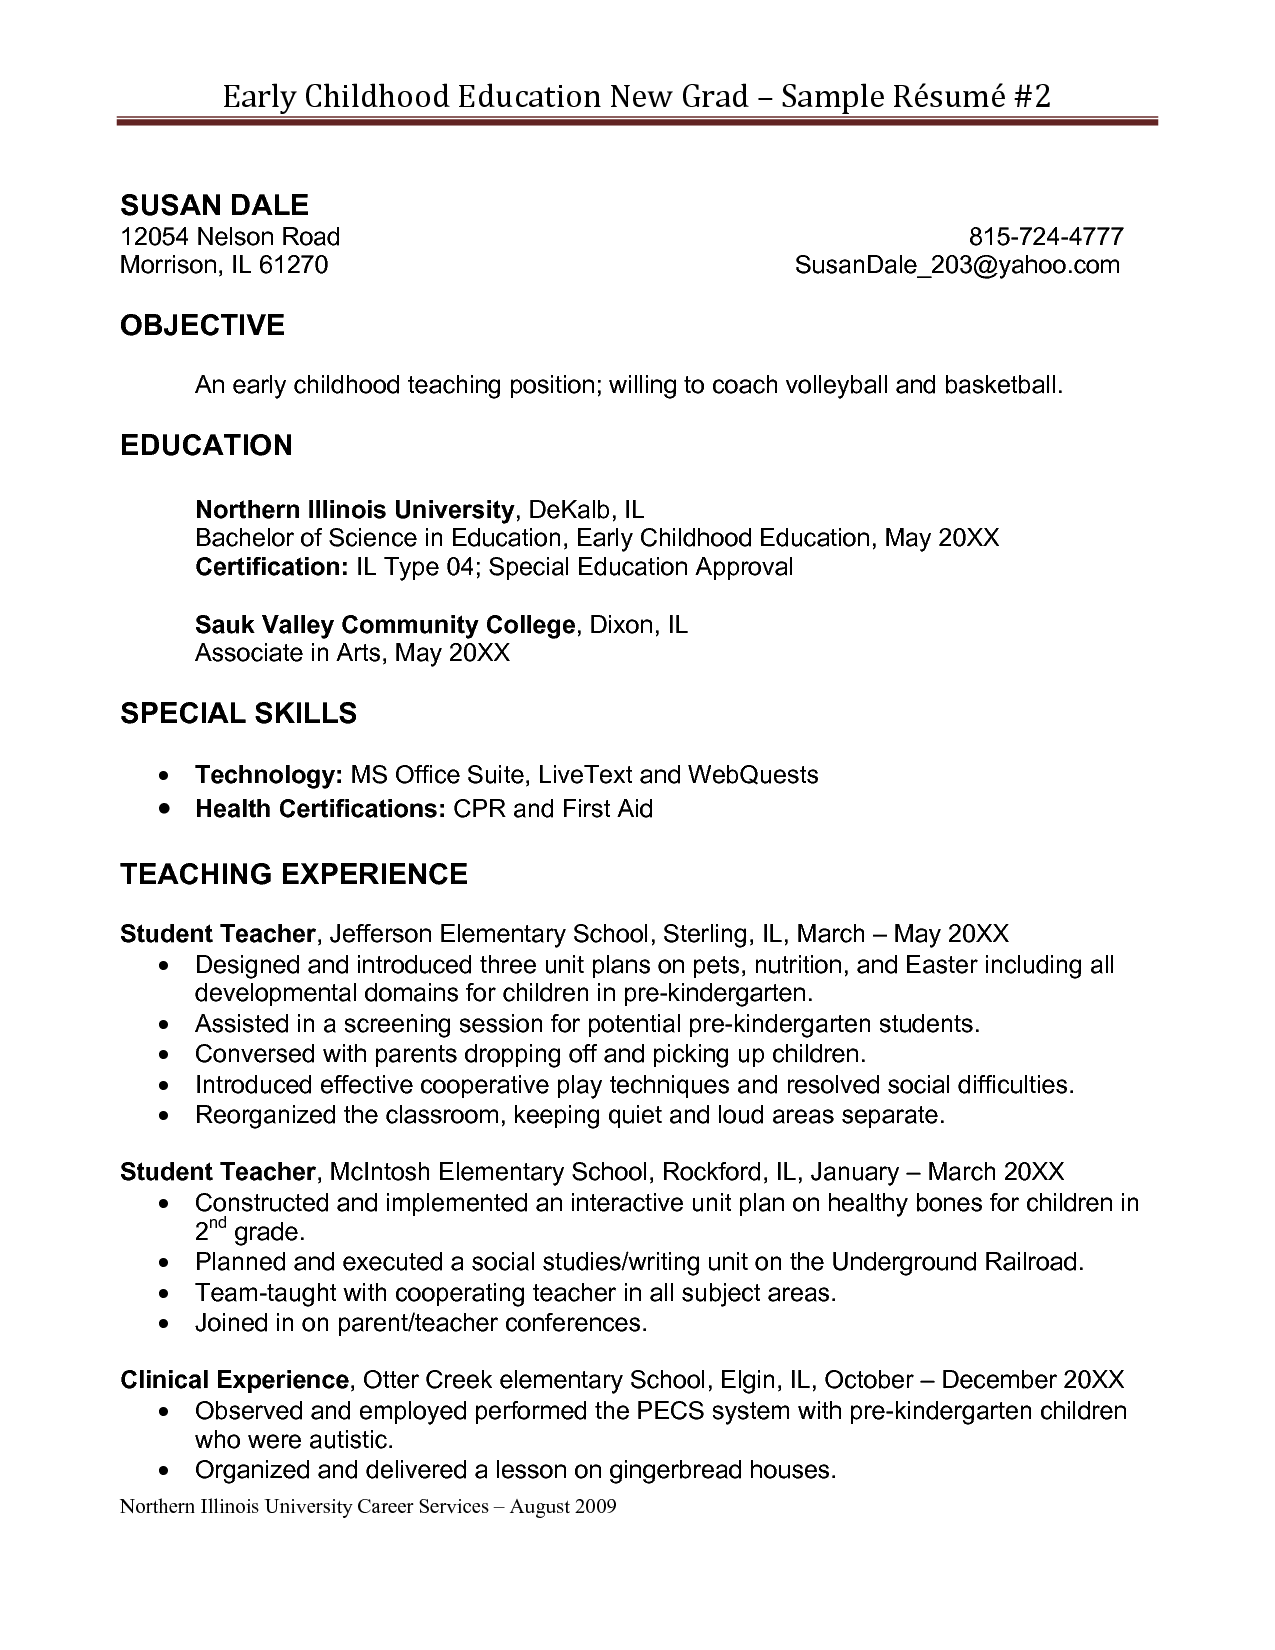 Education For Resume Early Childhood Education Resume Objective College